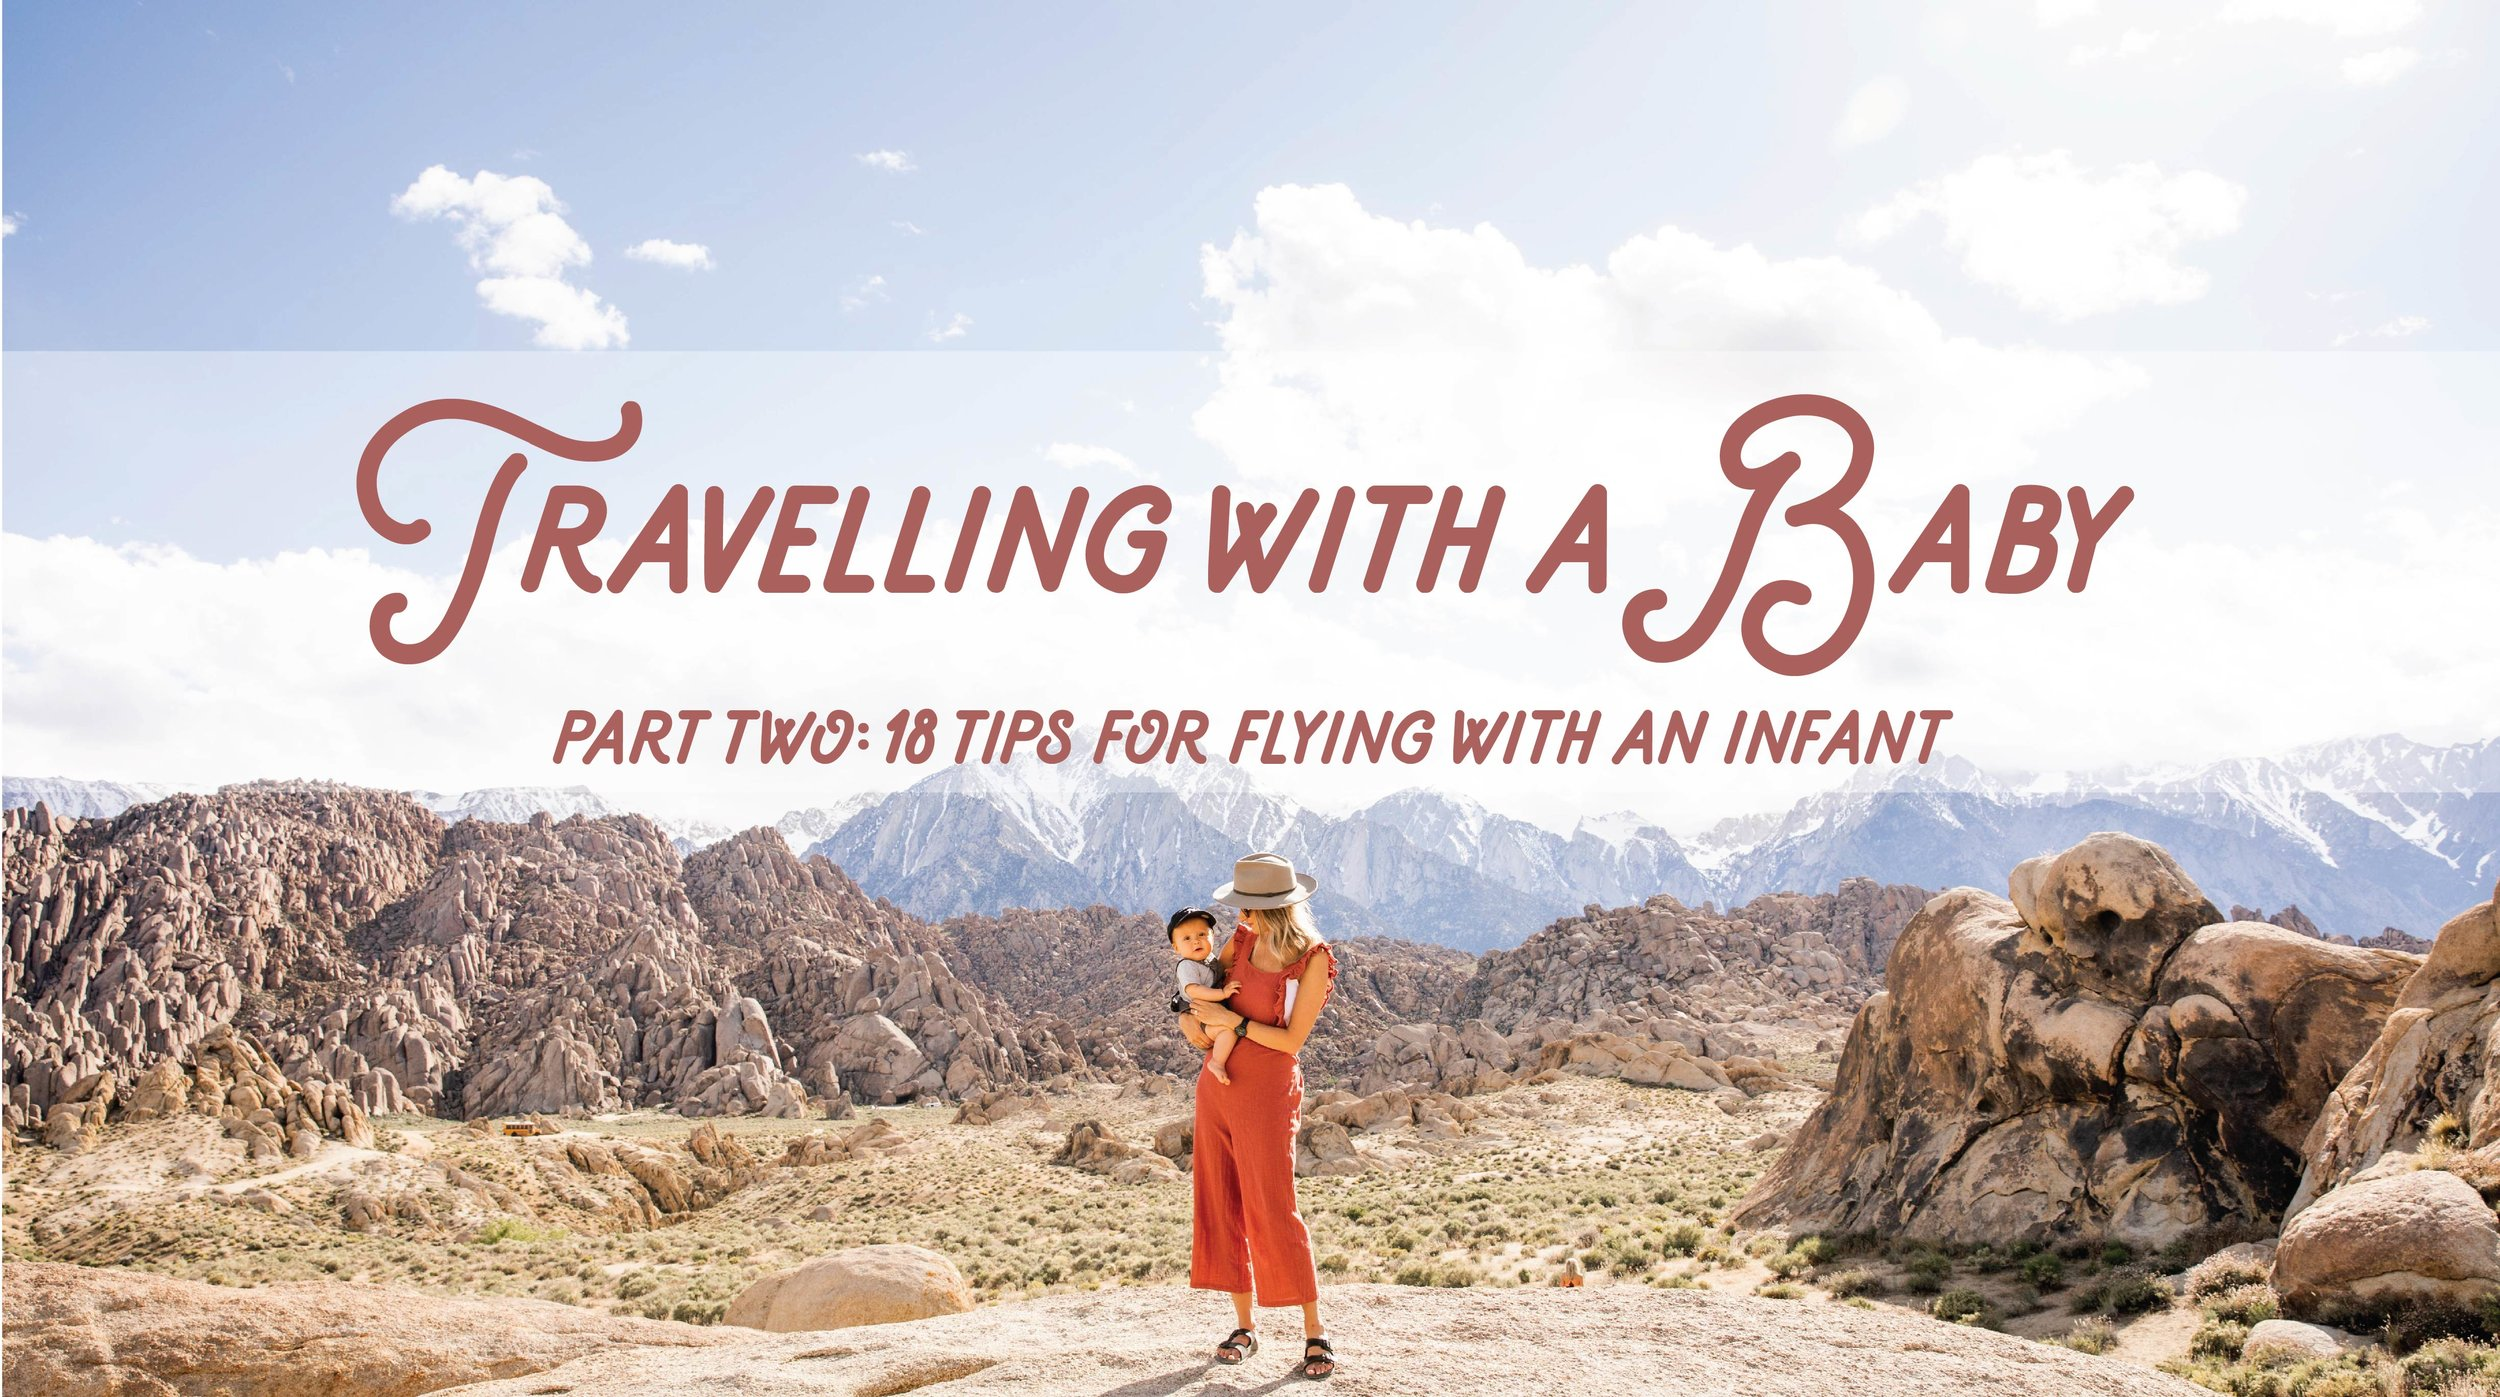 Travelling with a Baby - Part Two: 18 tips for flying with an infant